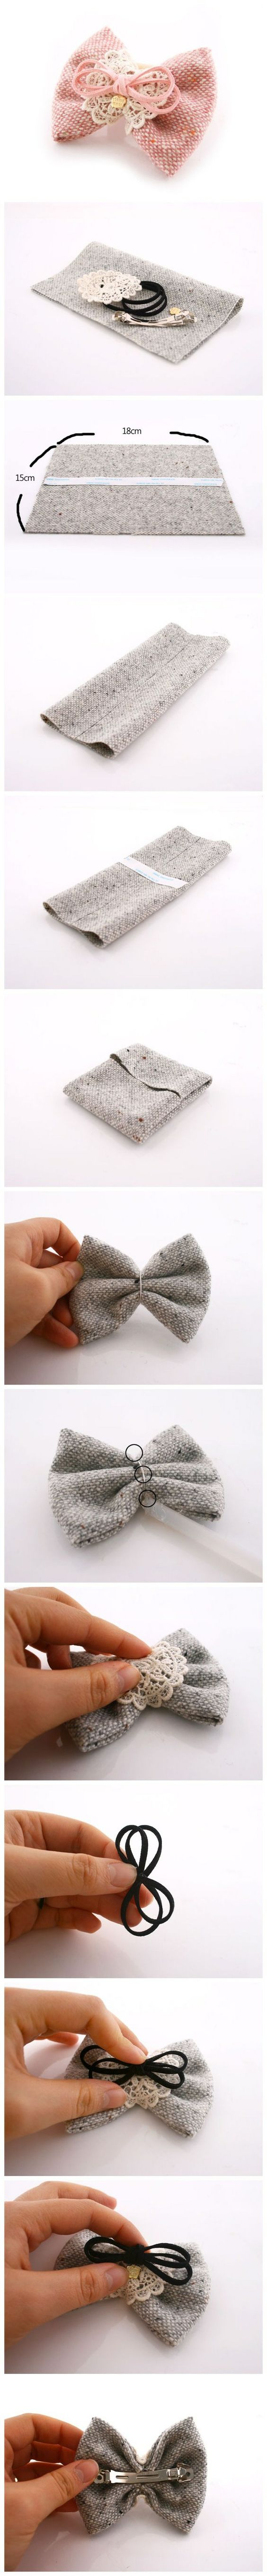 fabric-bows-making